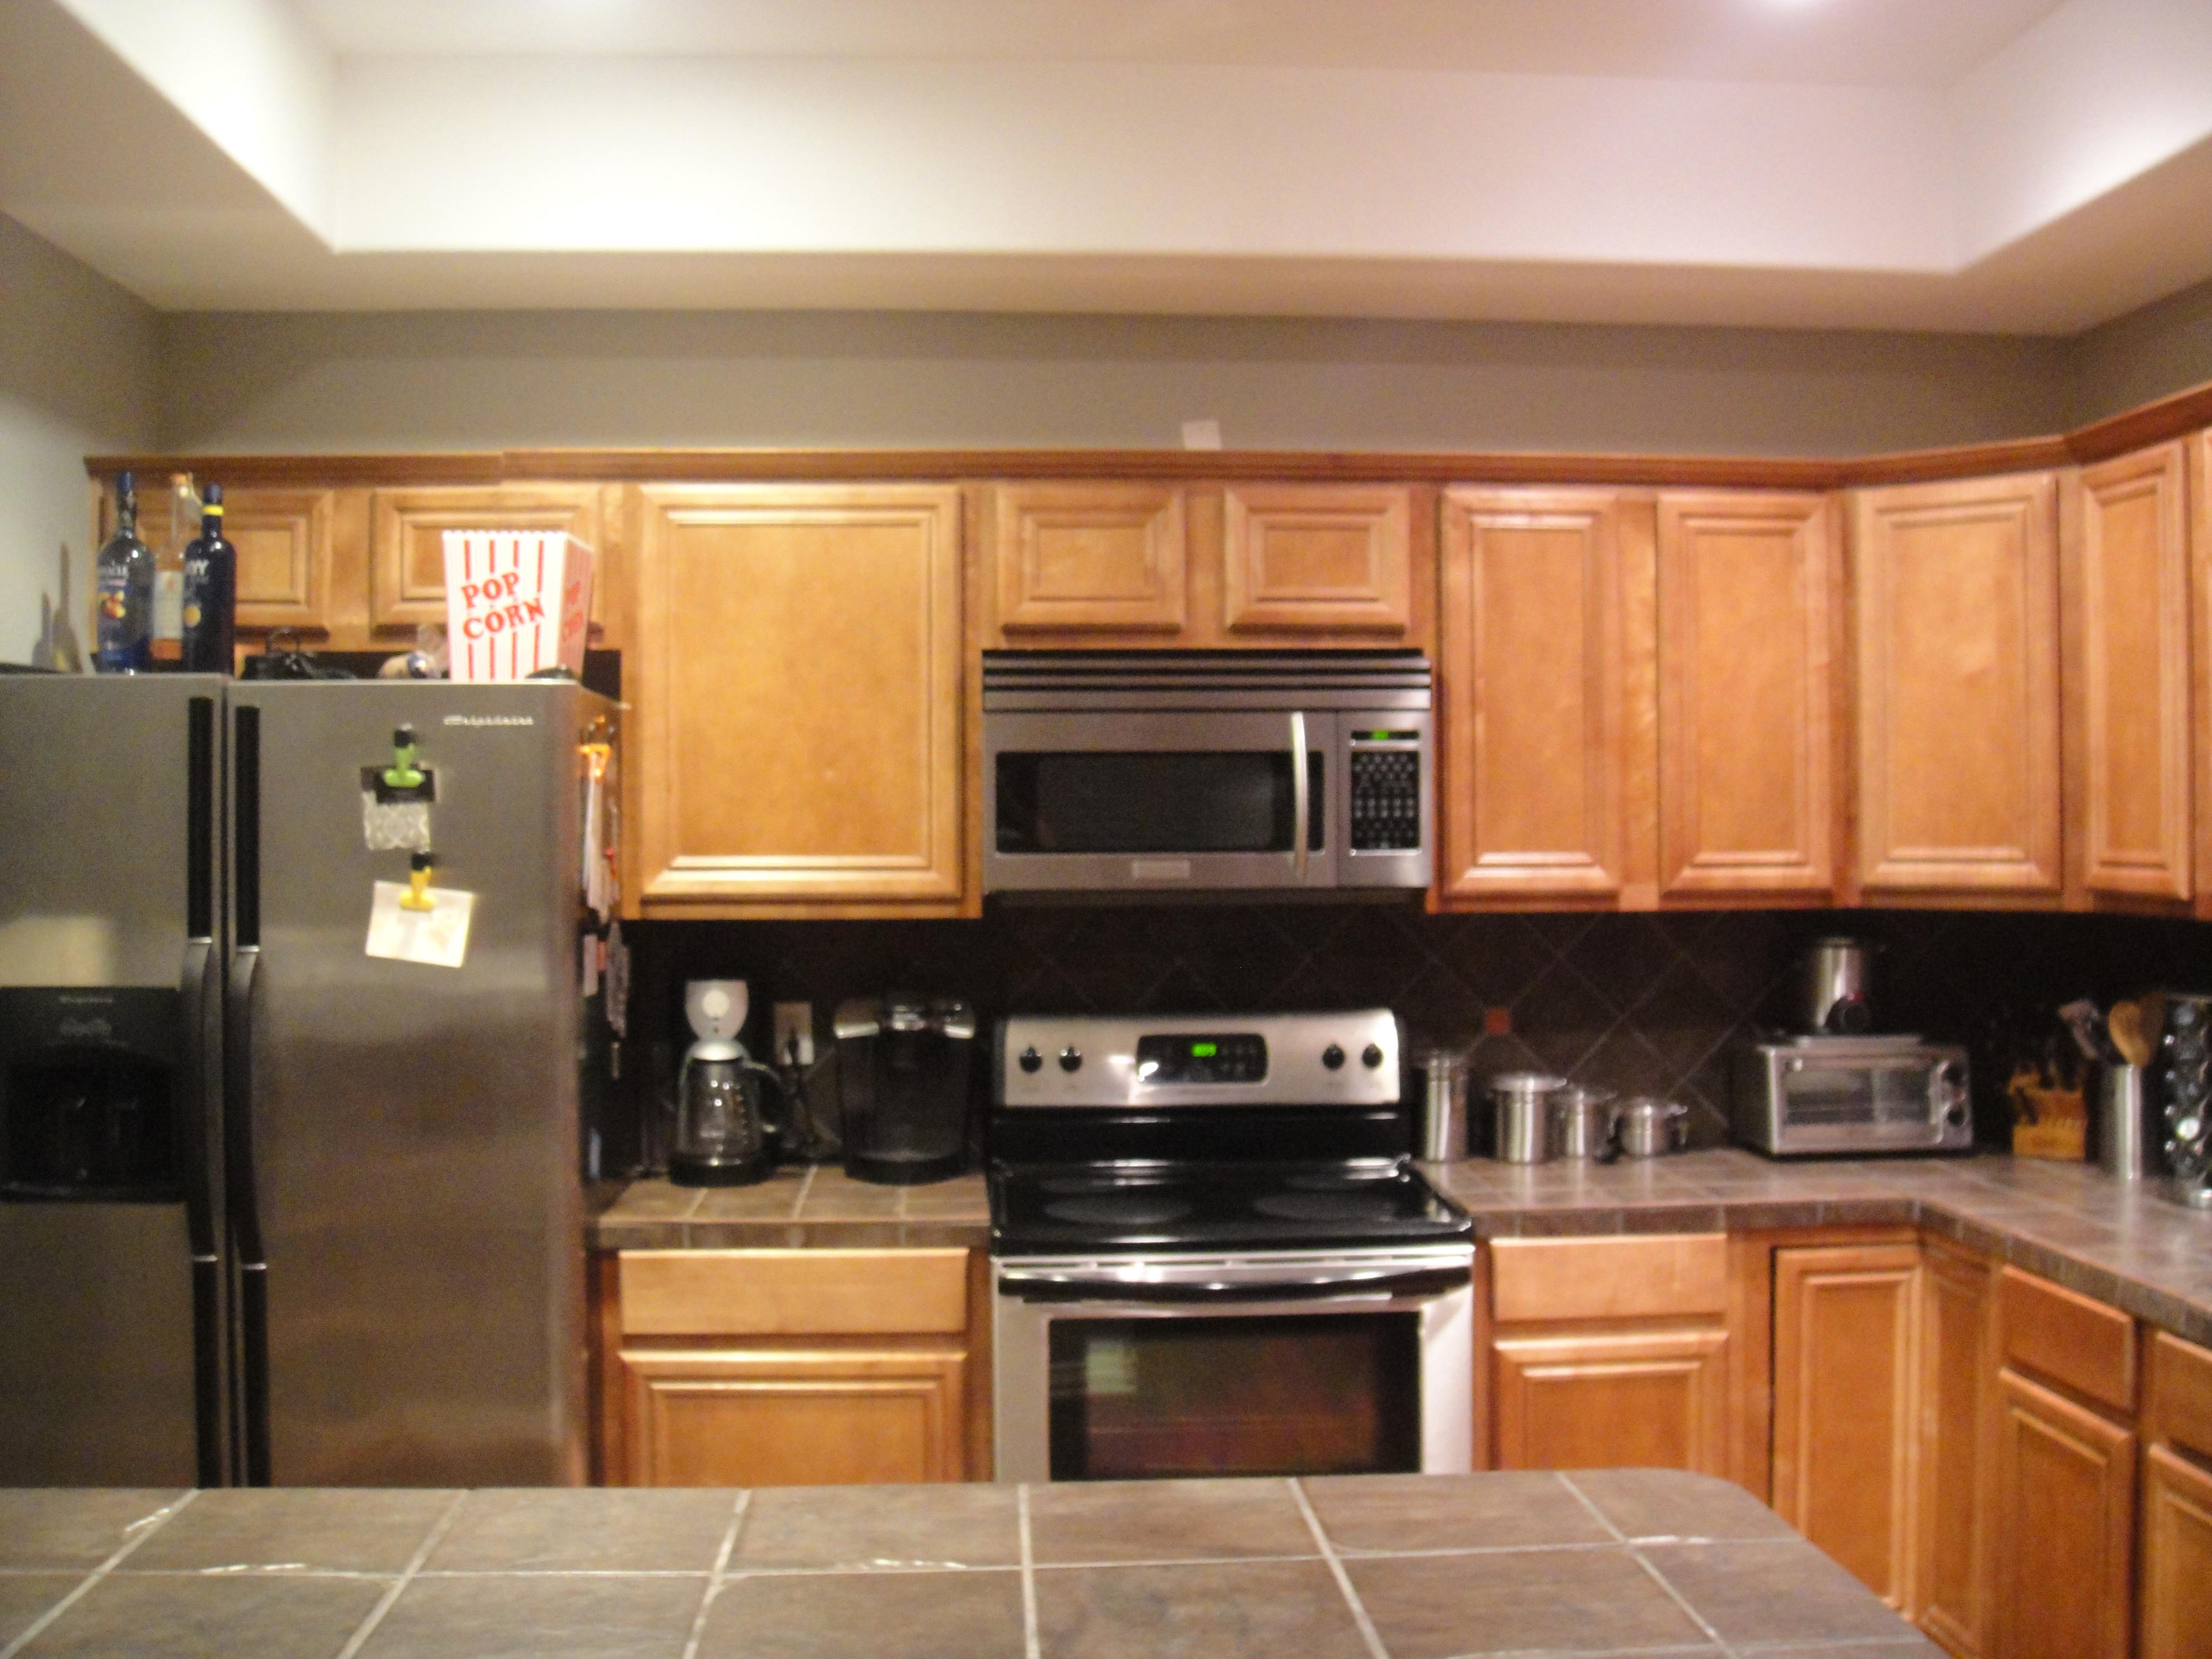 Organizers for kitchen cabinets Photo - 11